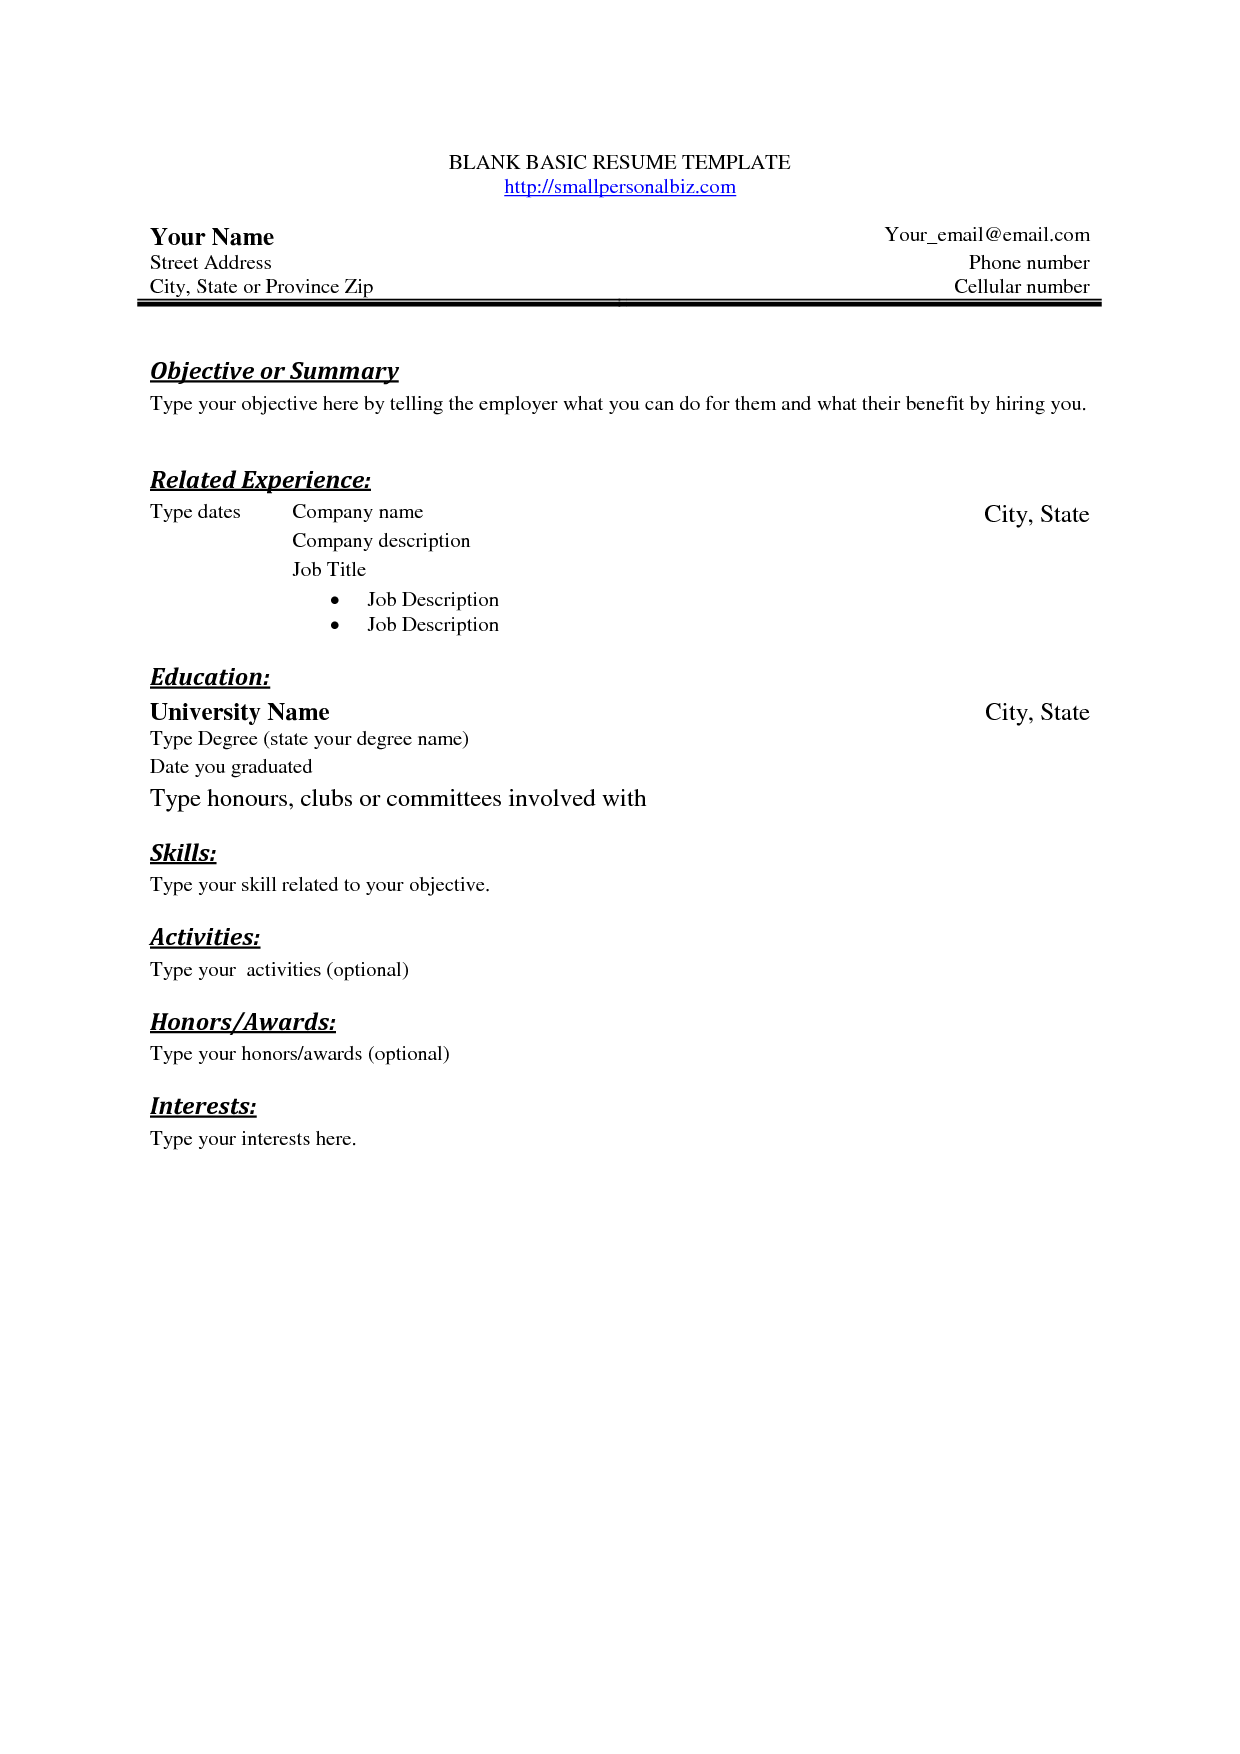 Free Blank Resume Templates Stylist And Luxury Simple Resume Layout 10 Free Basic Blank Resume